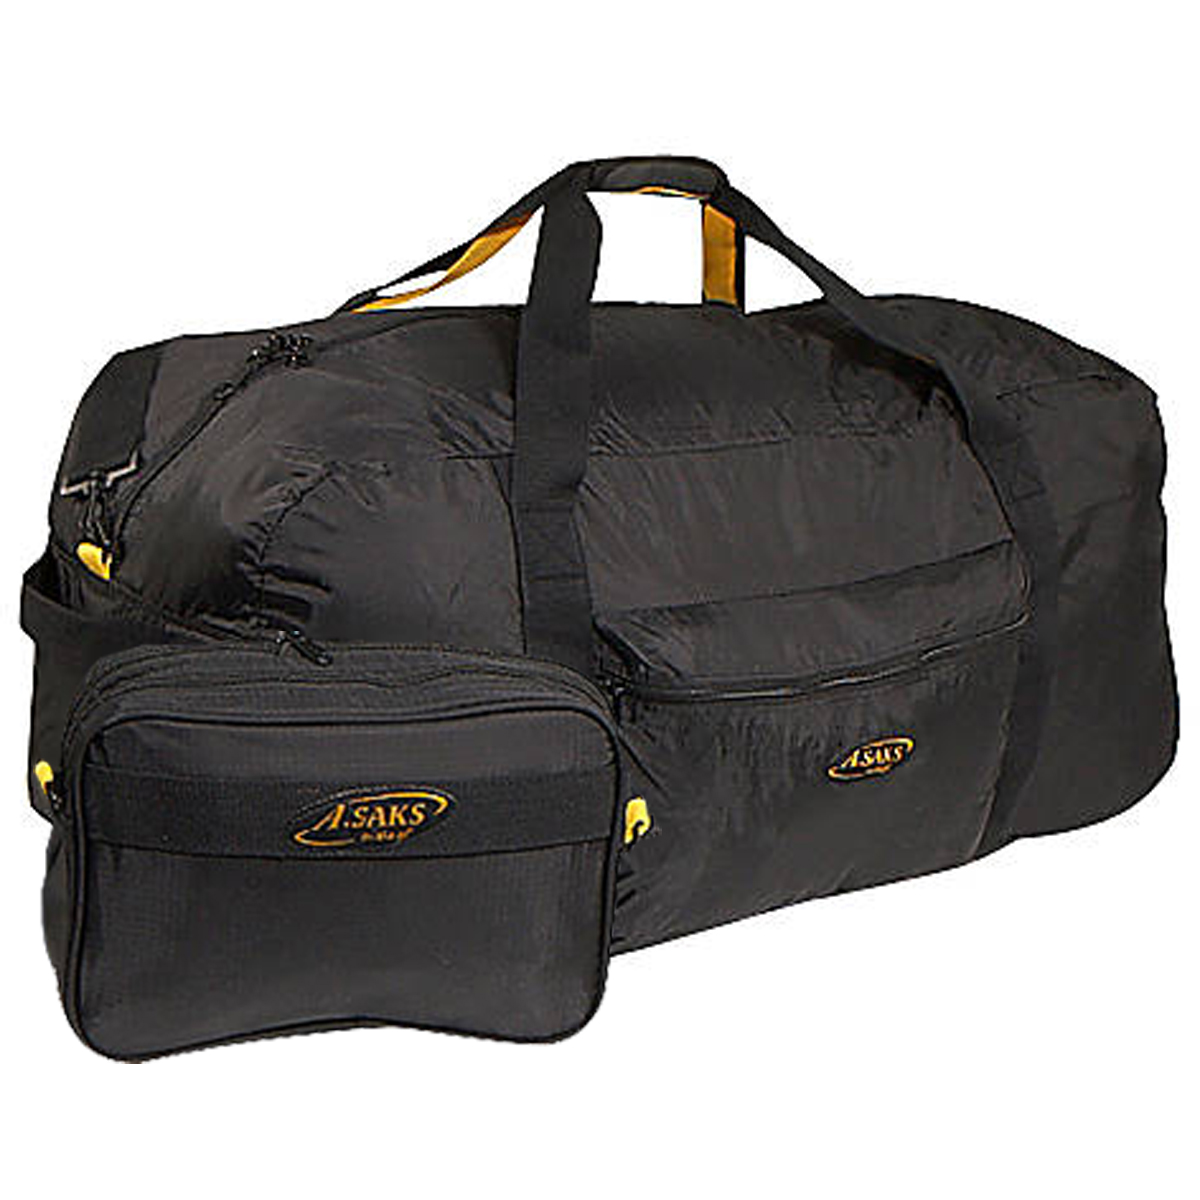 Image of Asaks F-36 2 In 1 Folding Carryon Duffle 36 Inch